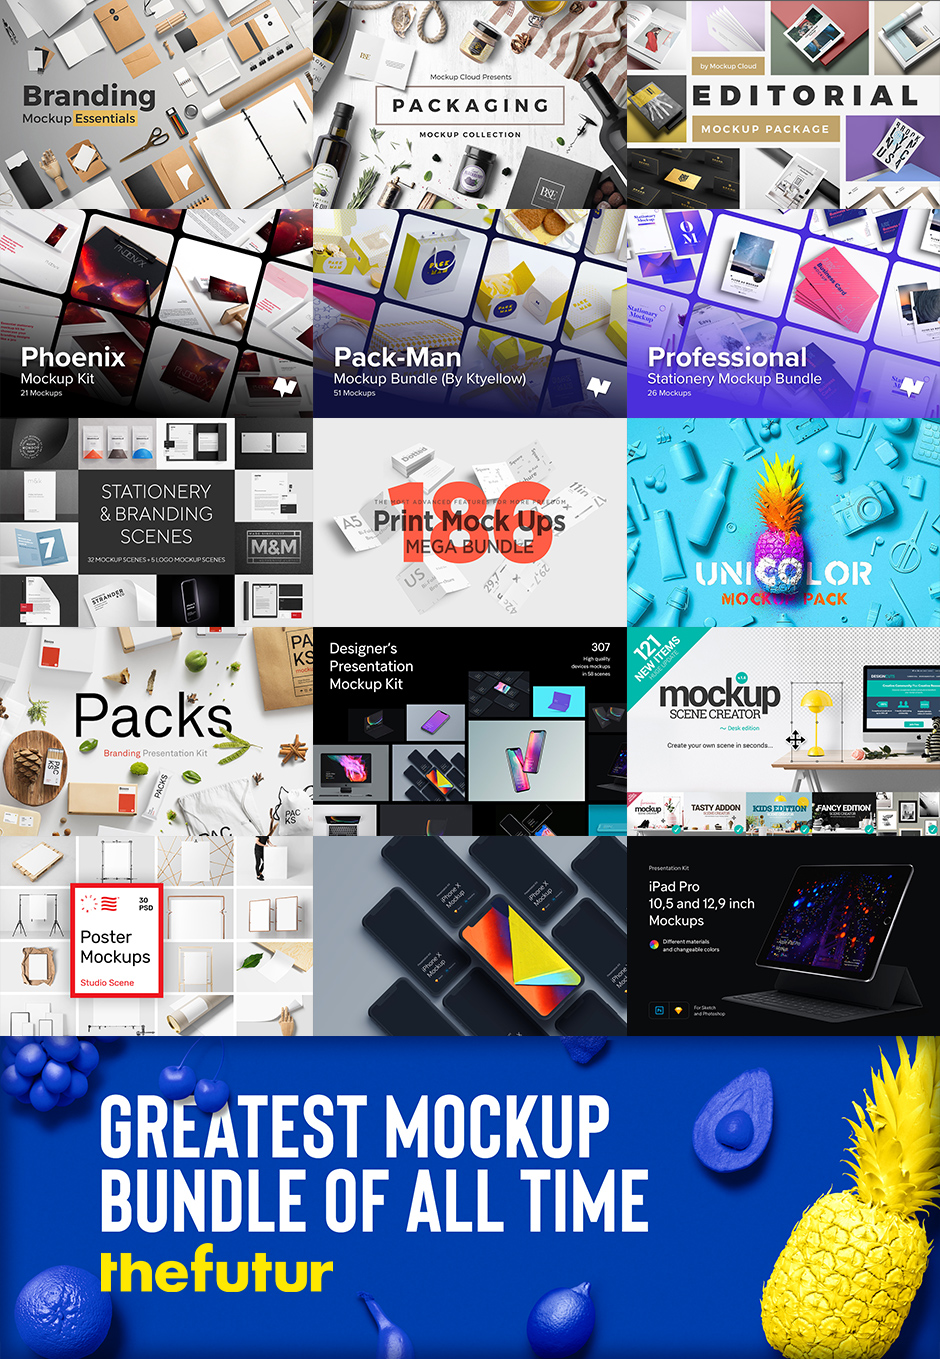 Best and Greatest Bundle of Mockups of all Time from: The Futur